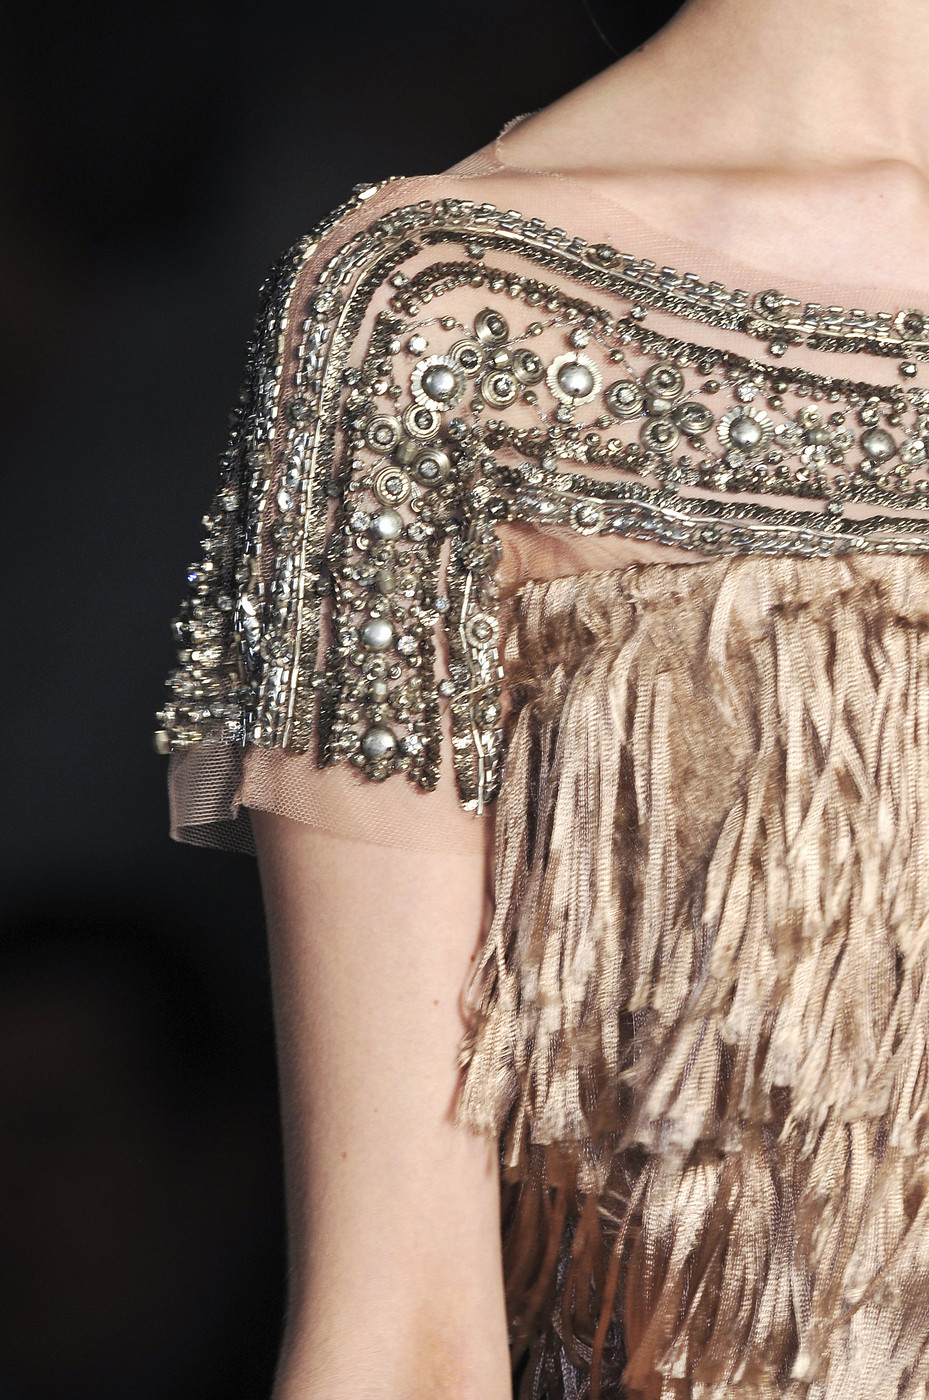 Alberta Ferretti Fall/Winter 2010